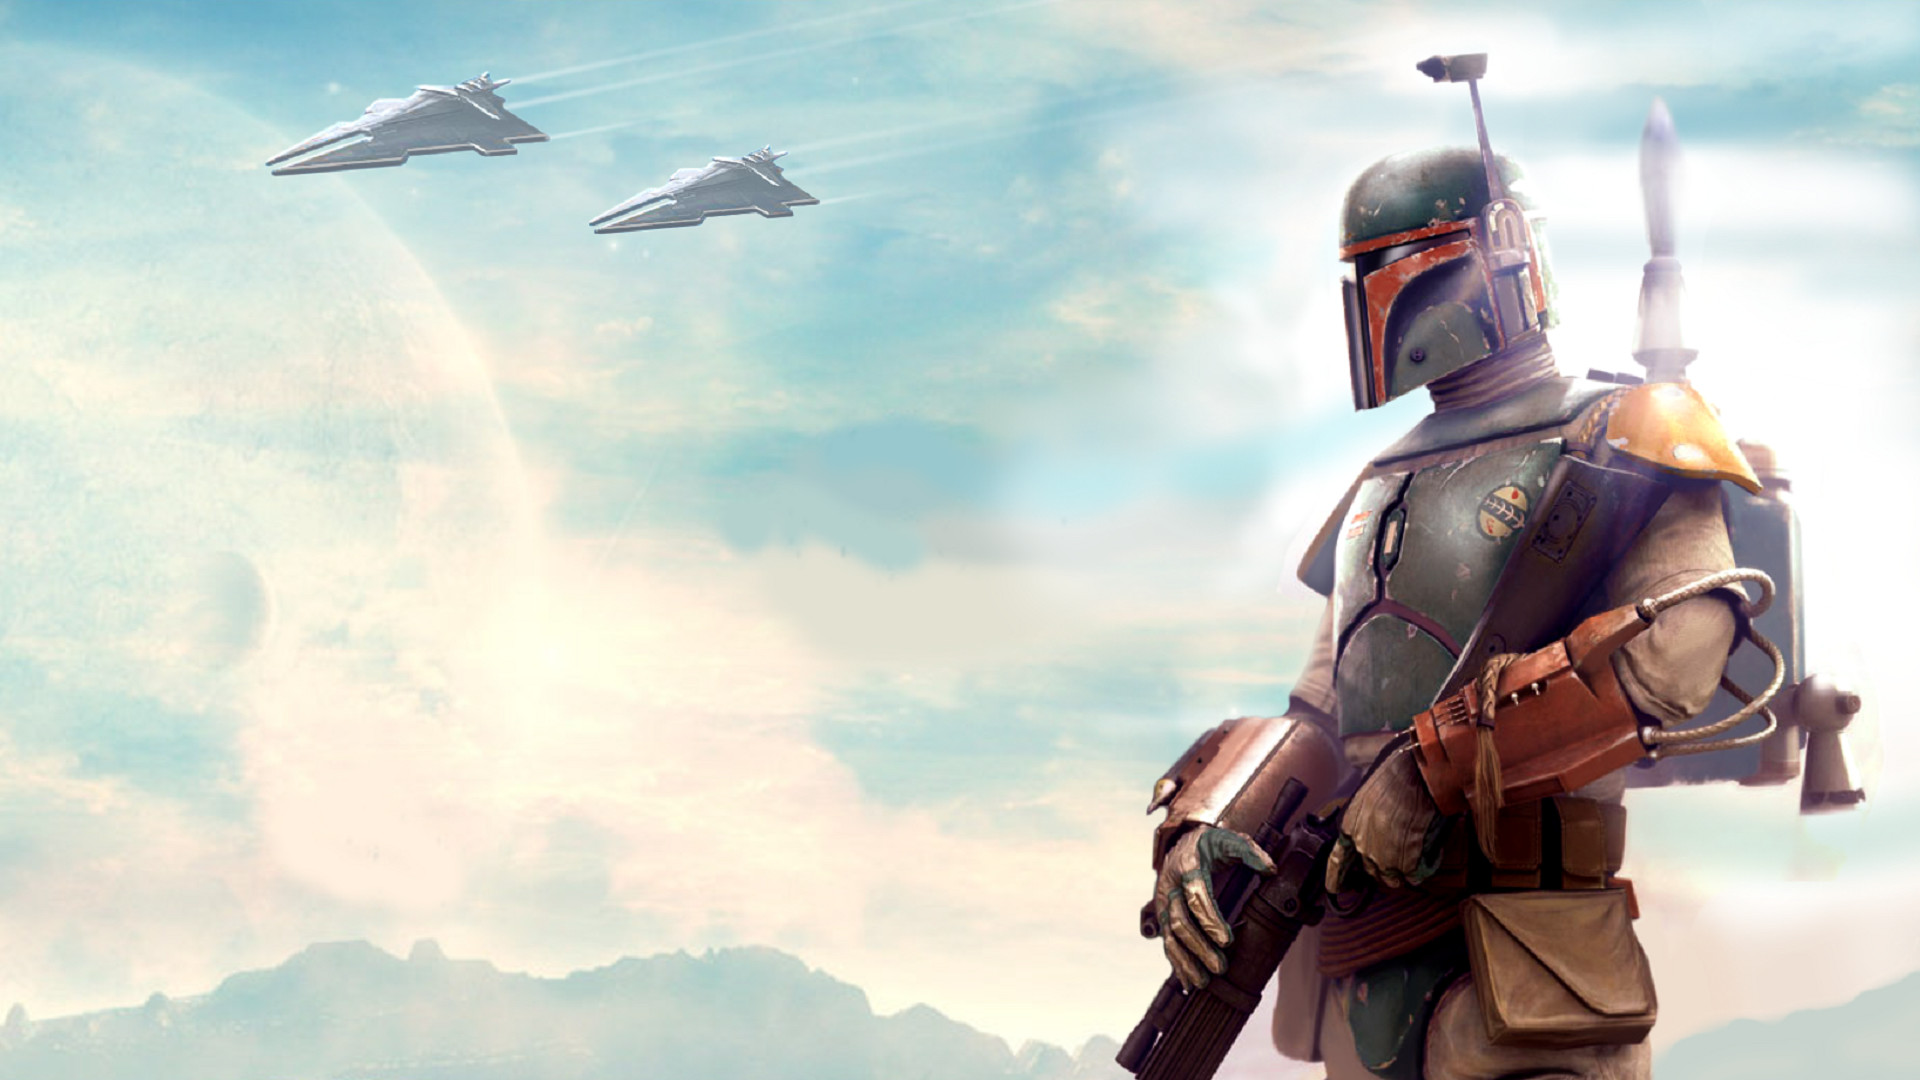 Boba Fett Wallpaper Star Wars Wallpaper Hd Boba Fett 1920x1080 Download Hd Wallpaper Wallpapertip